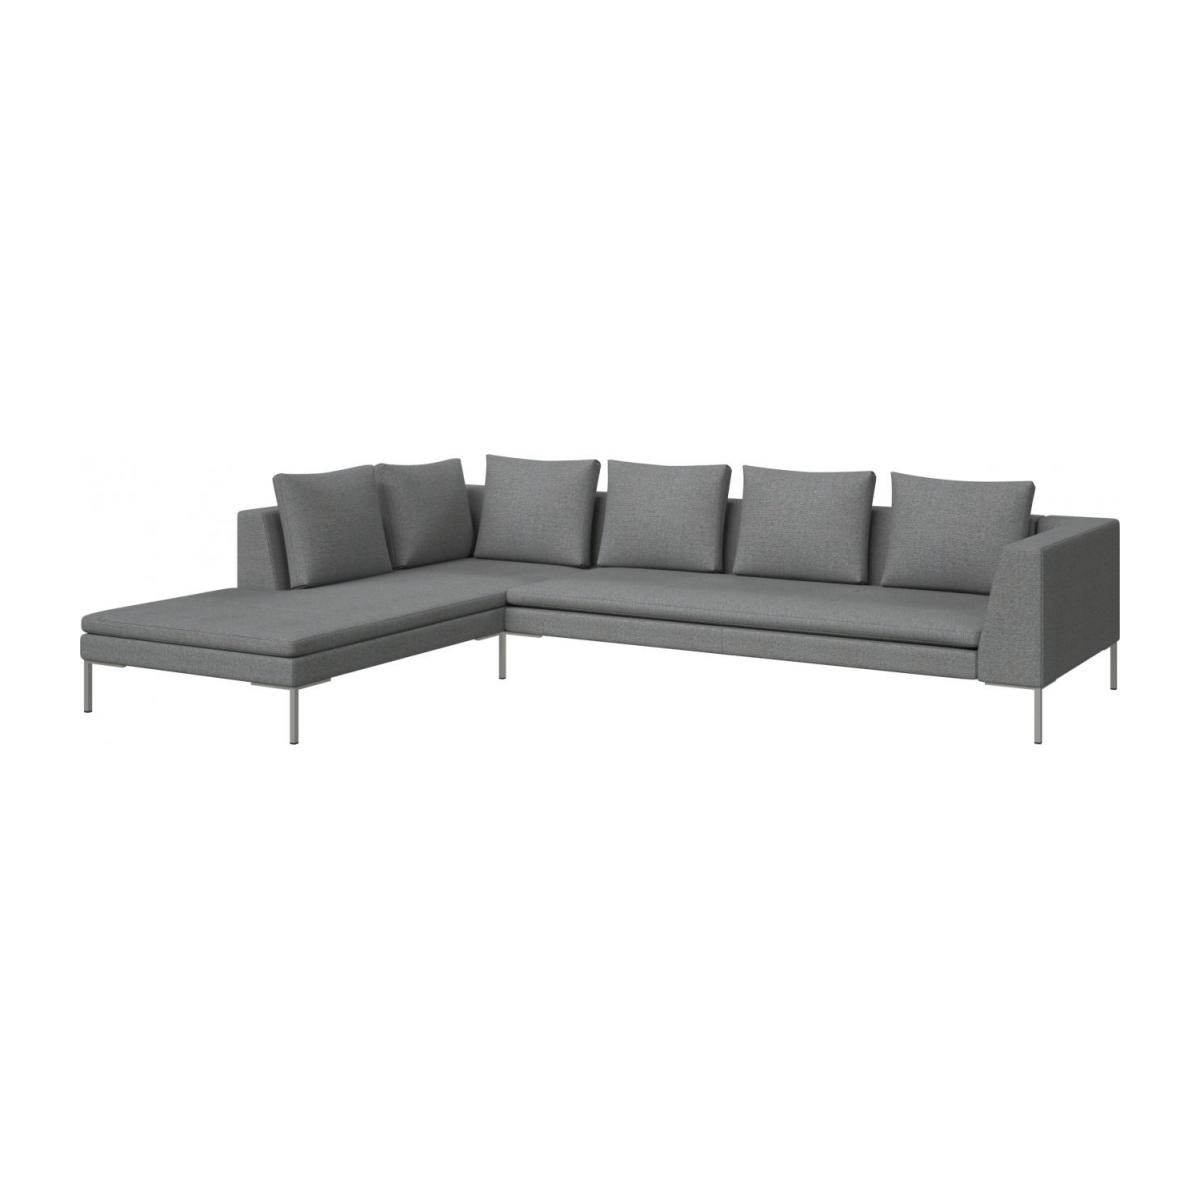 3 seater sofa with chaise longue on the left in Lecce fabric, blue reef  n°1